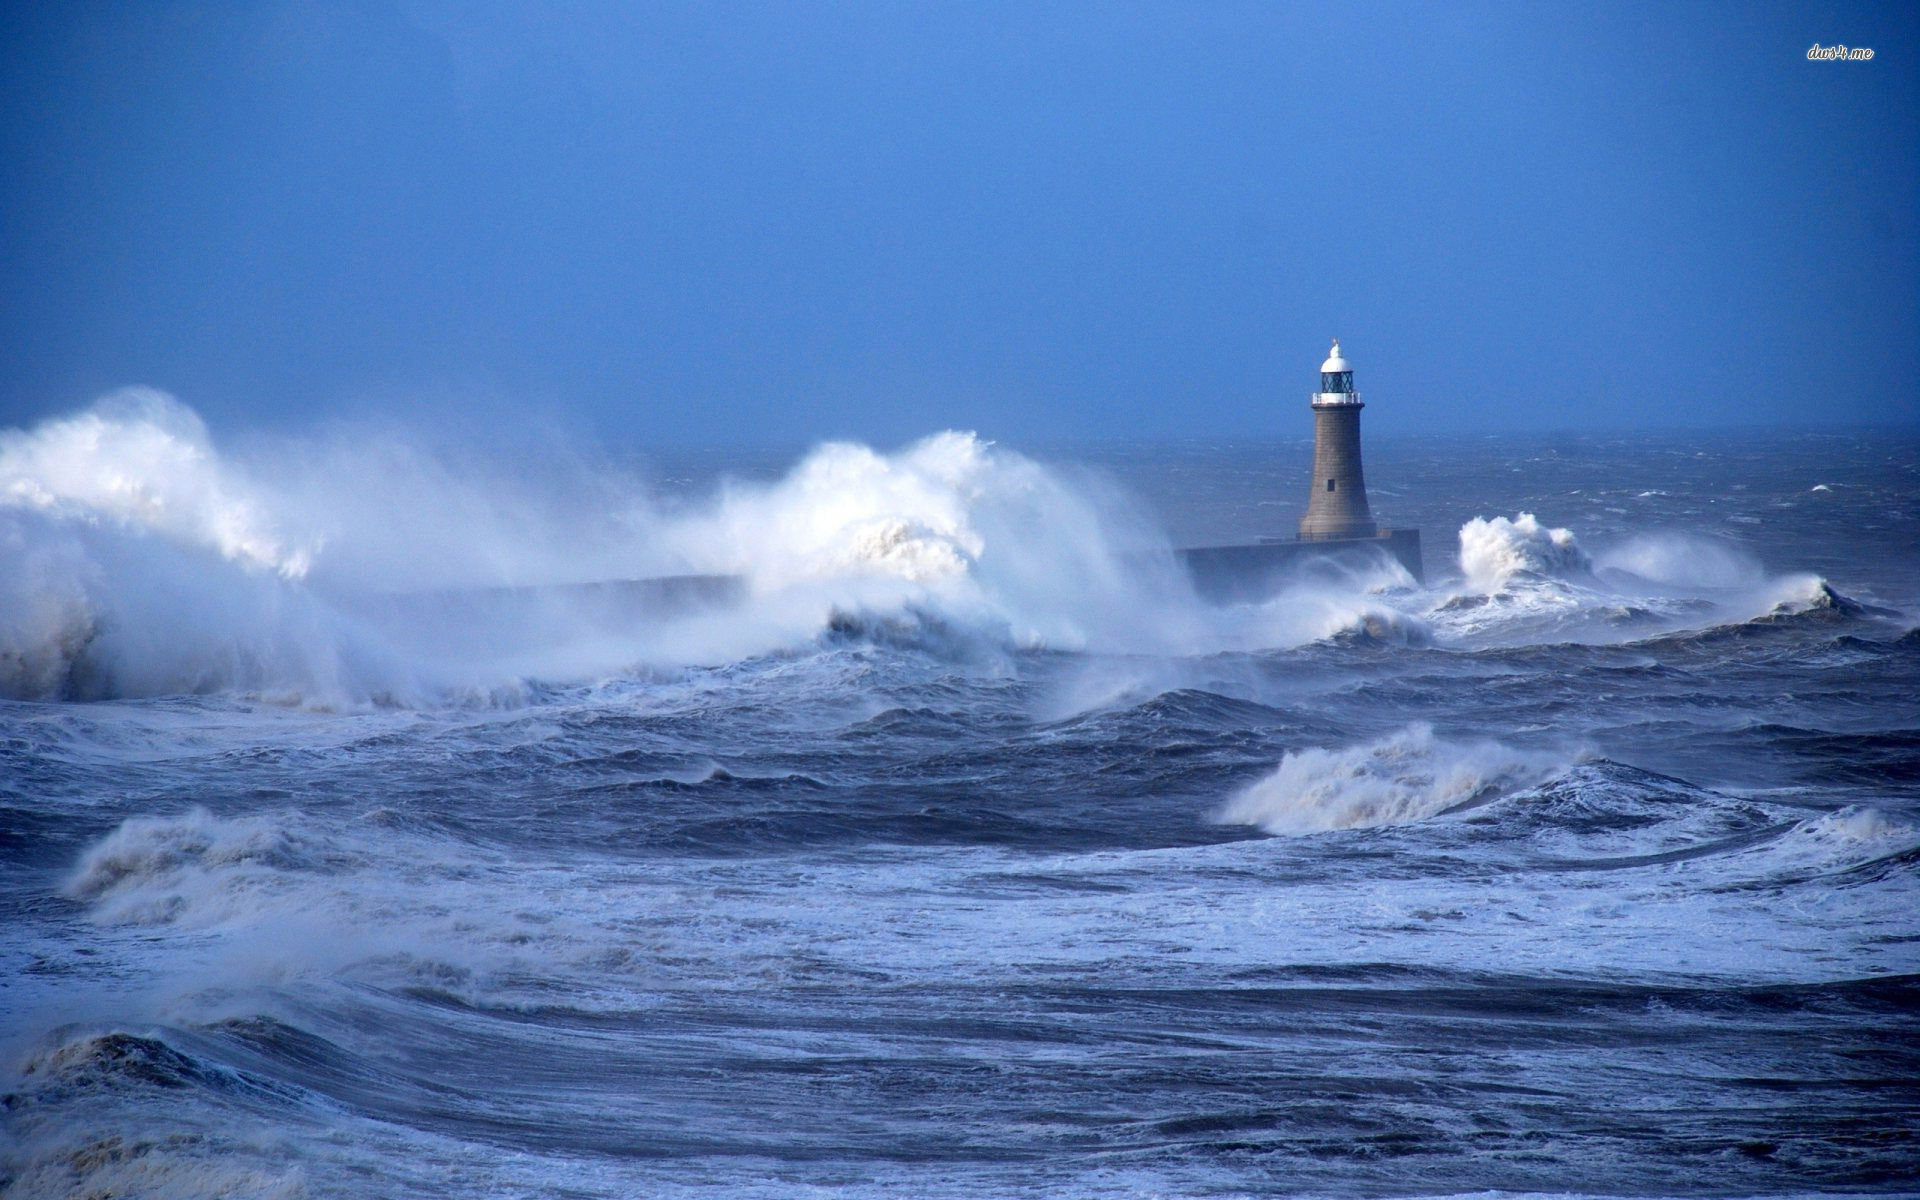 Rough waves hitting the lighthouse wallpaper   1068483 1920x1200